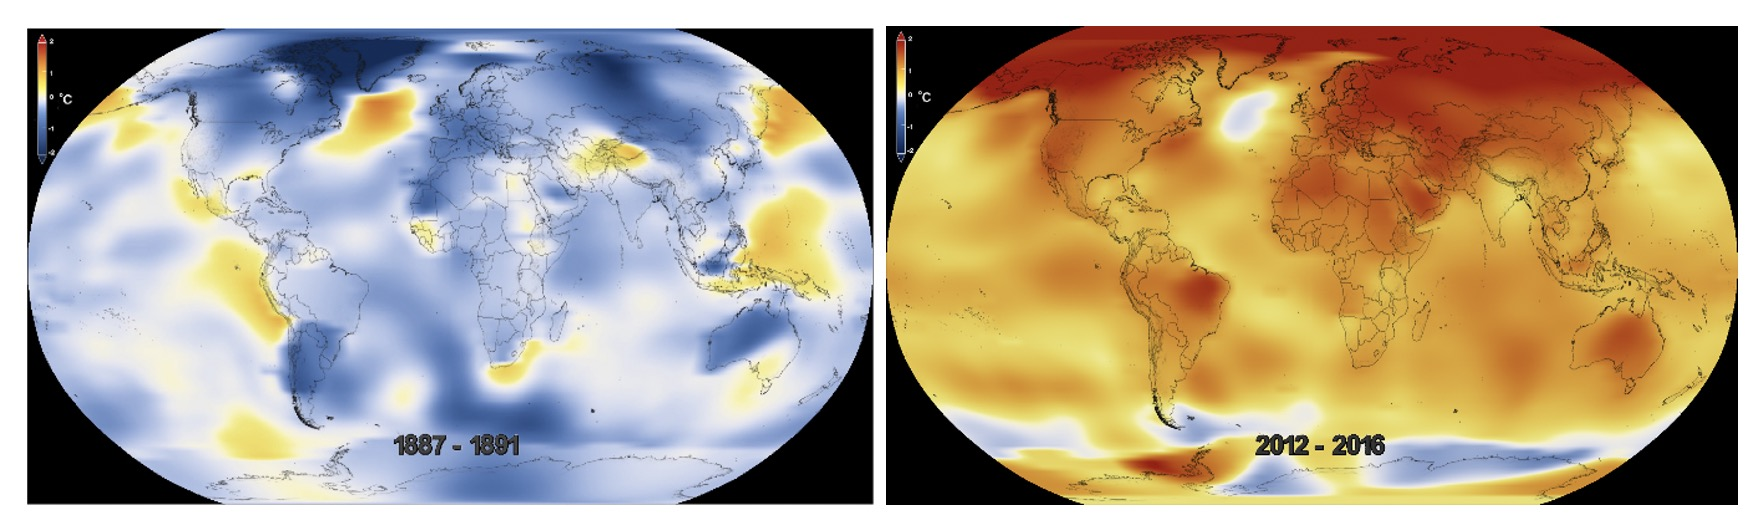 NASA Five-Year Global Temperature Anomalies 1887-1891 (Left) and 2012-2016 (Right).